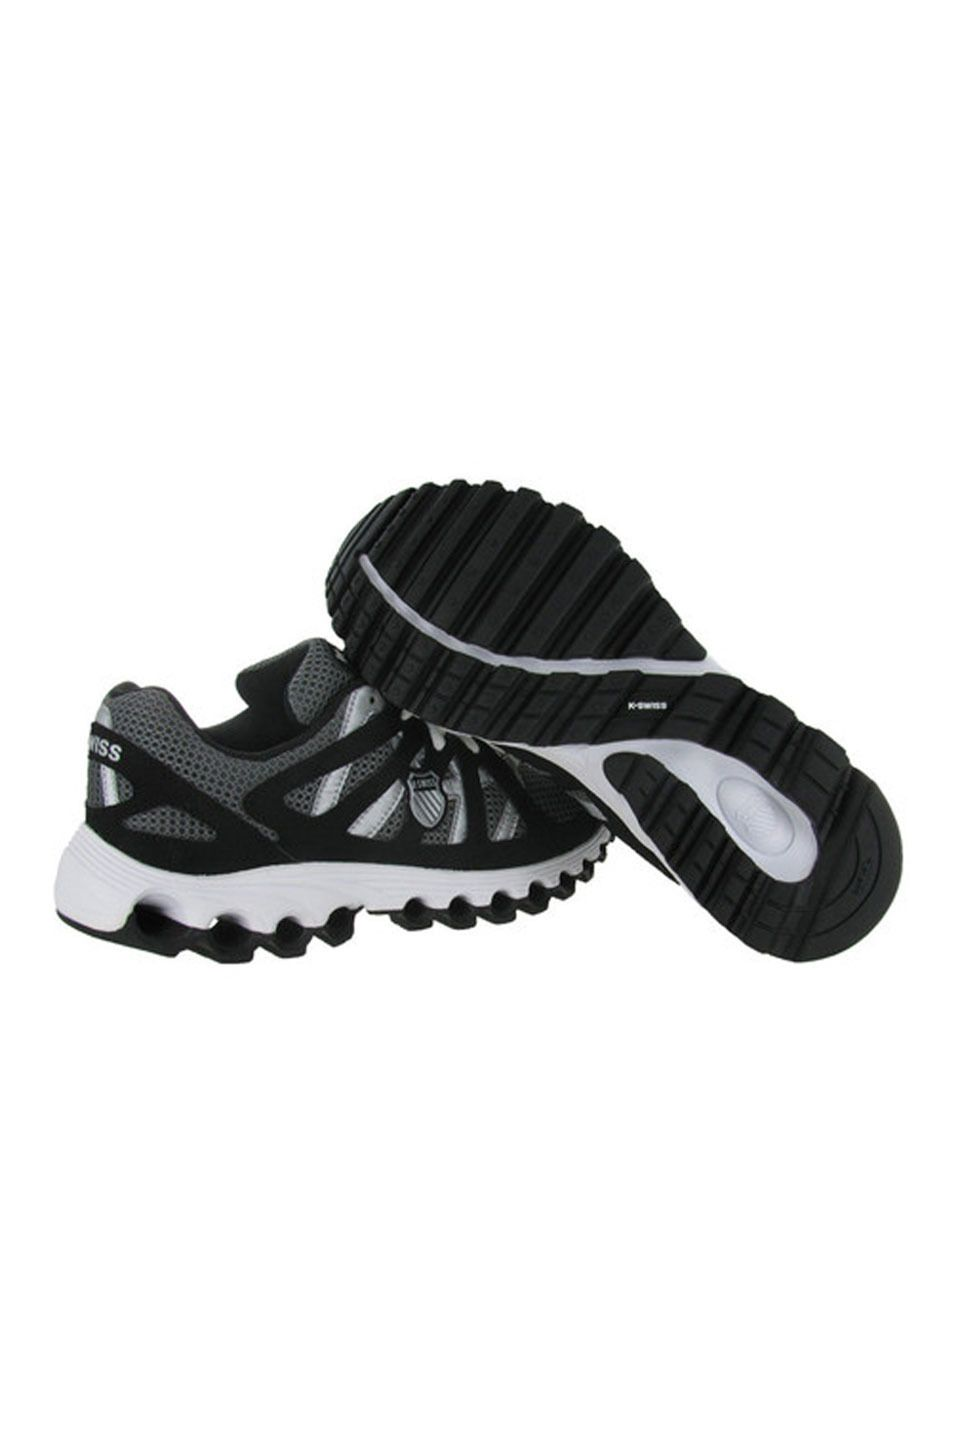 Tubes Run 110 Shoe in Gray and Black The Tubes Run 110 by K-Swiss shoes feature breathable mesh synthetic uppers with criss cross overlays; Lace up closure; K-Swiss logo on tongue and heel; Cushioned insole; Treaded tubbed outsole Men #Shoes